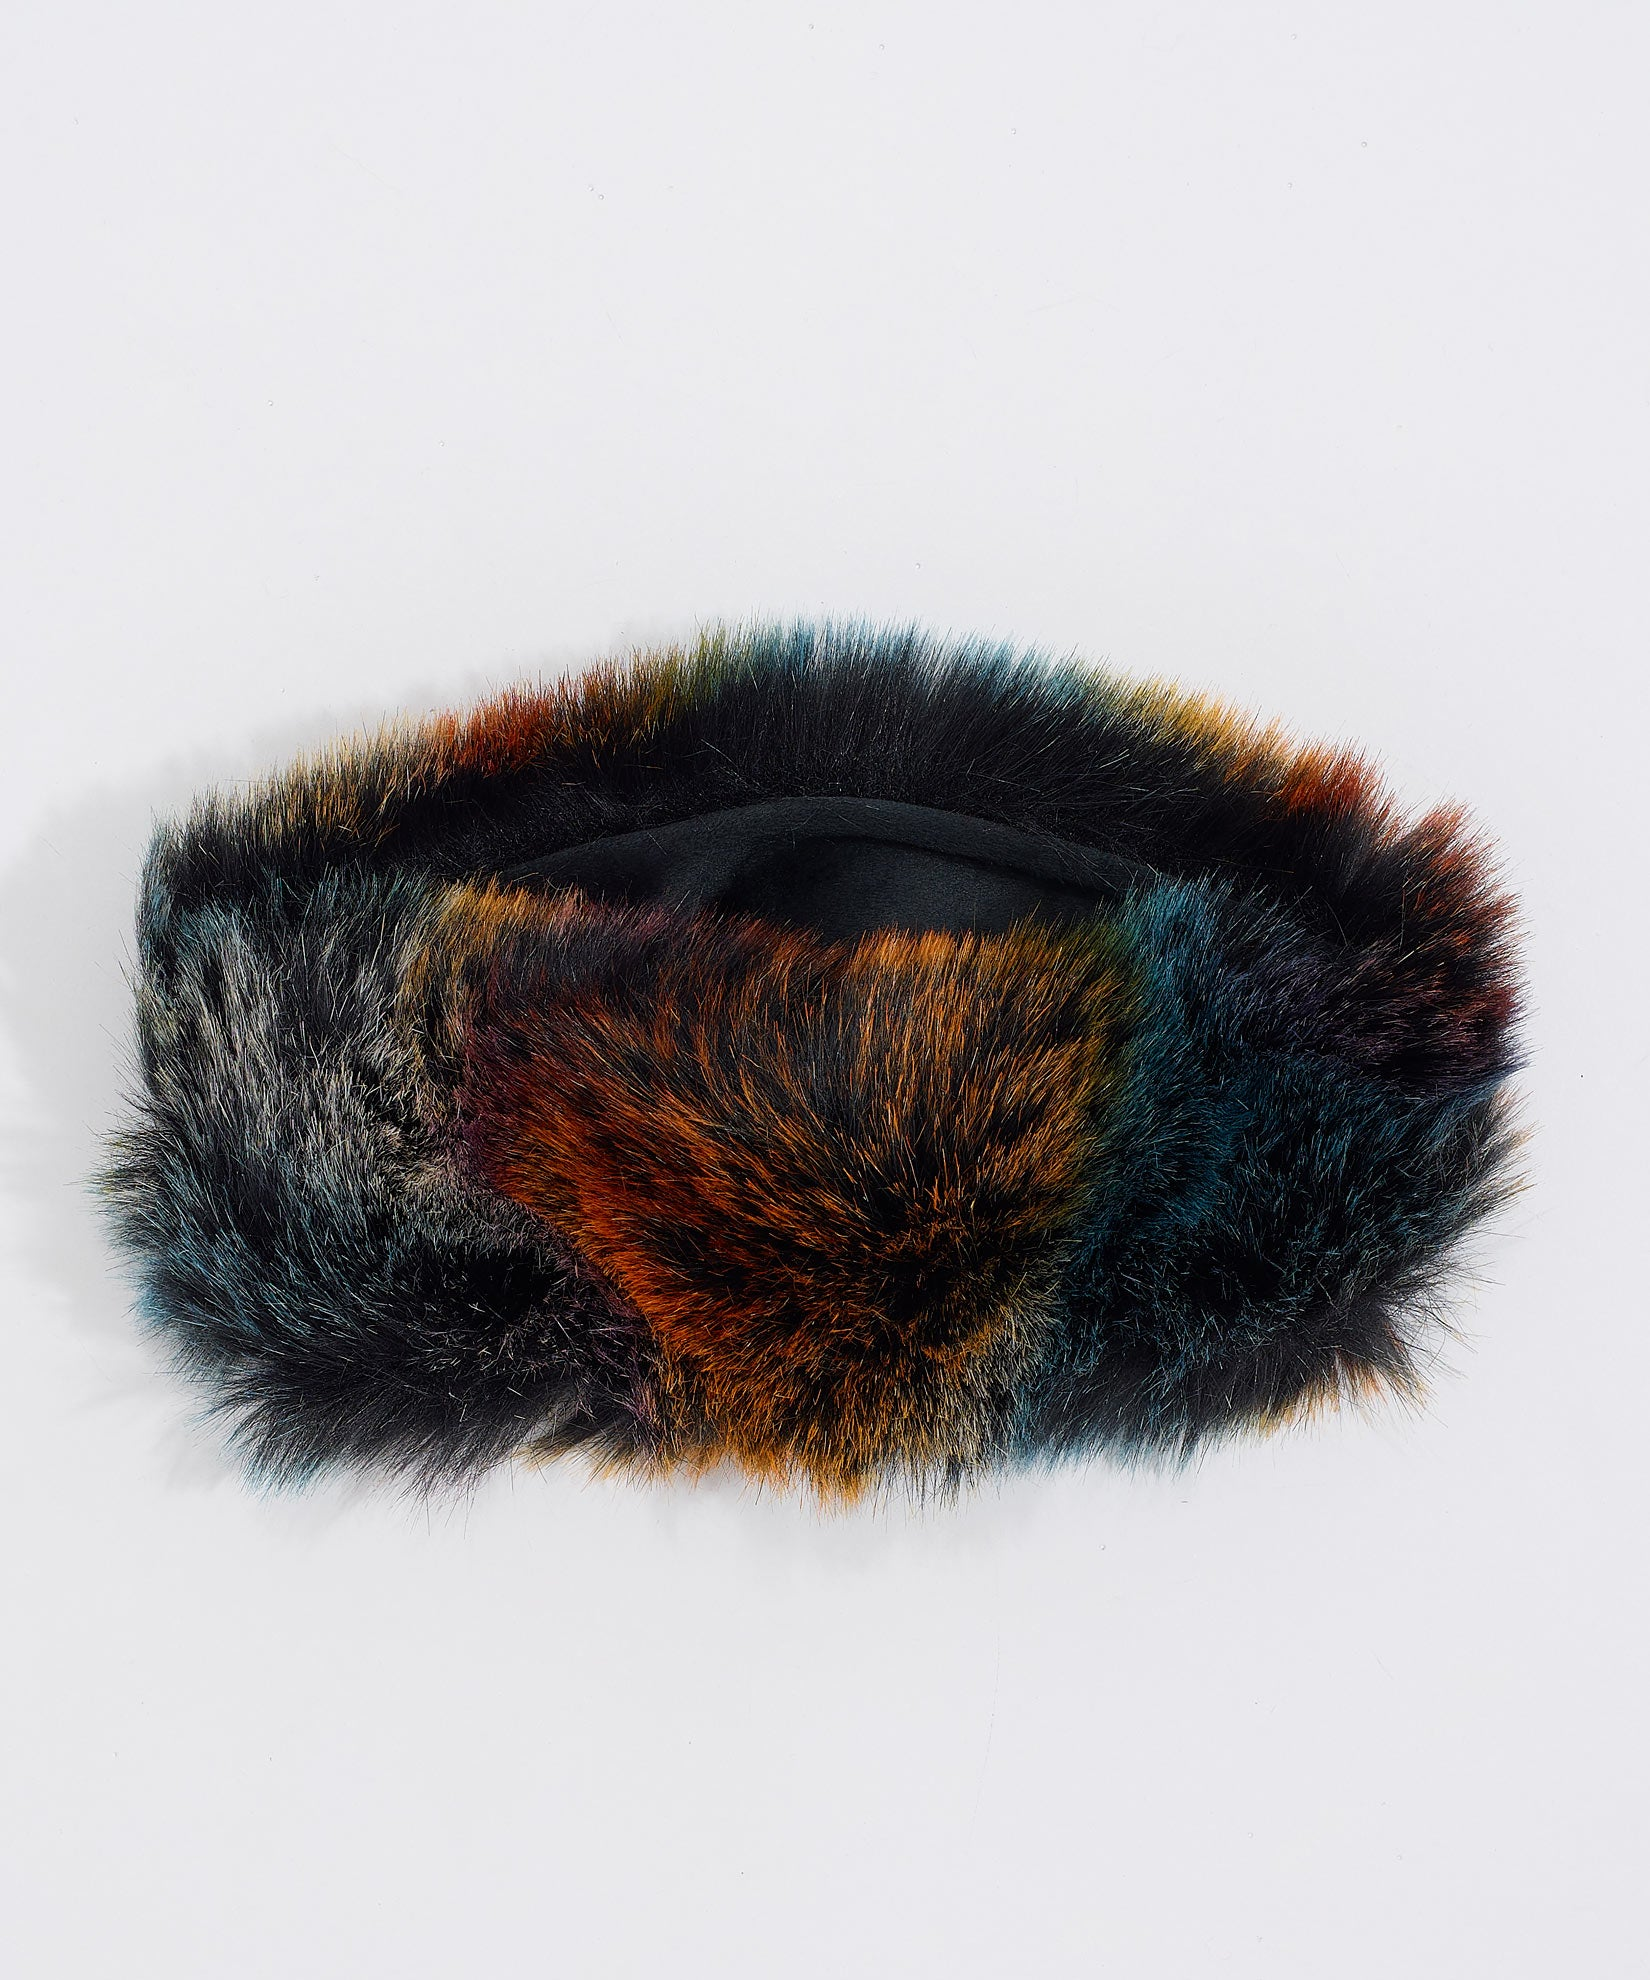 Multi - Multi Use Faux Fur Neck Ring Headband